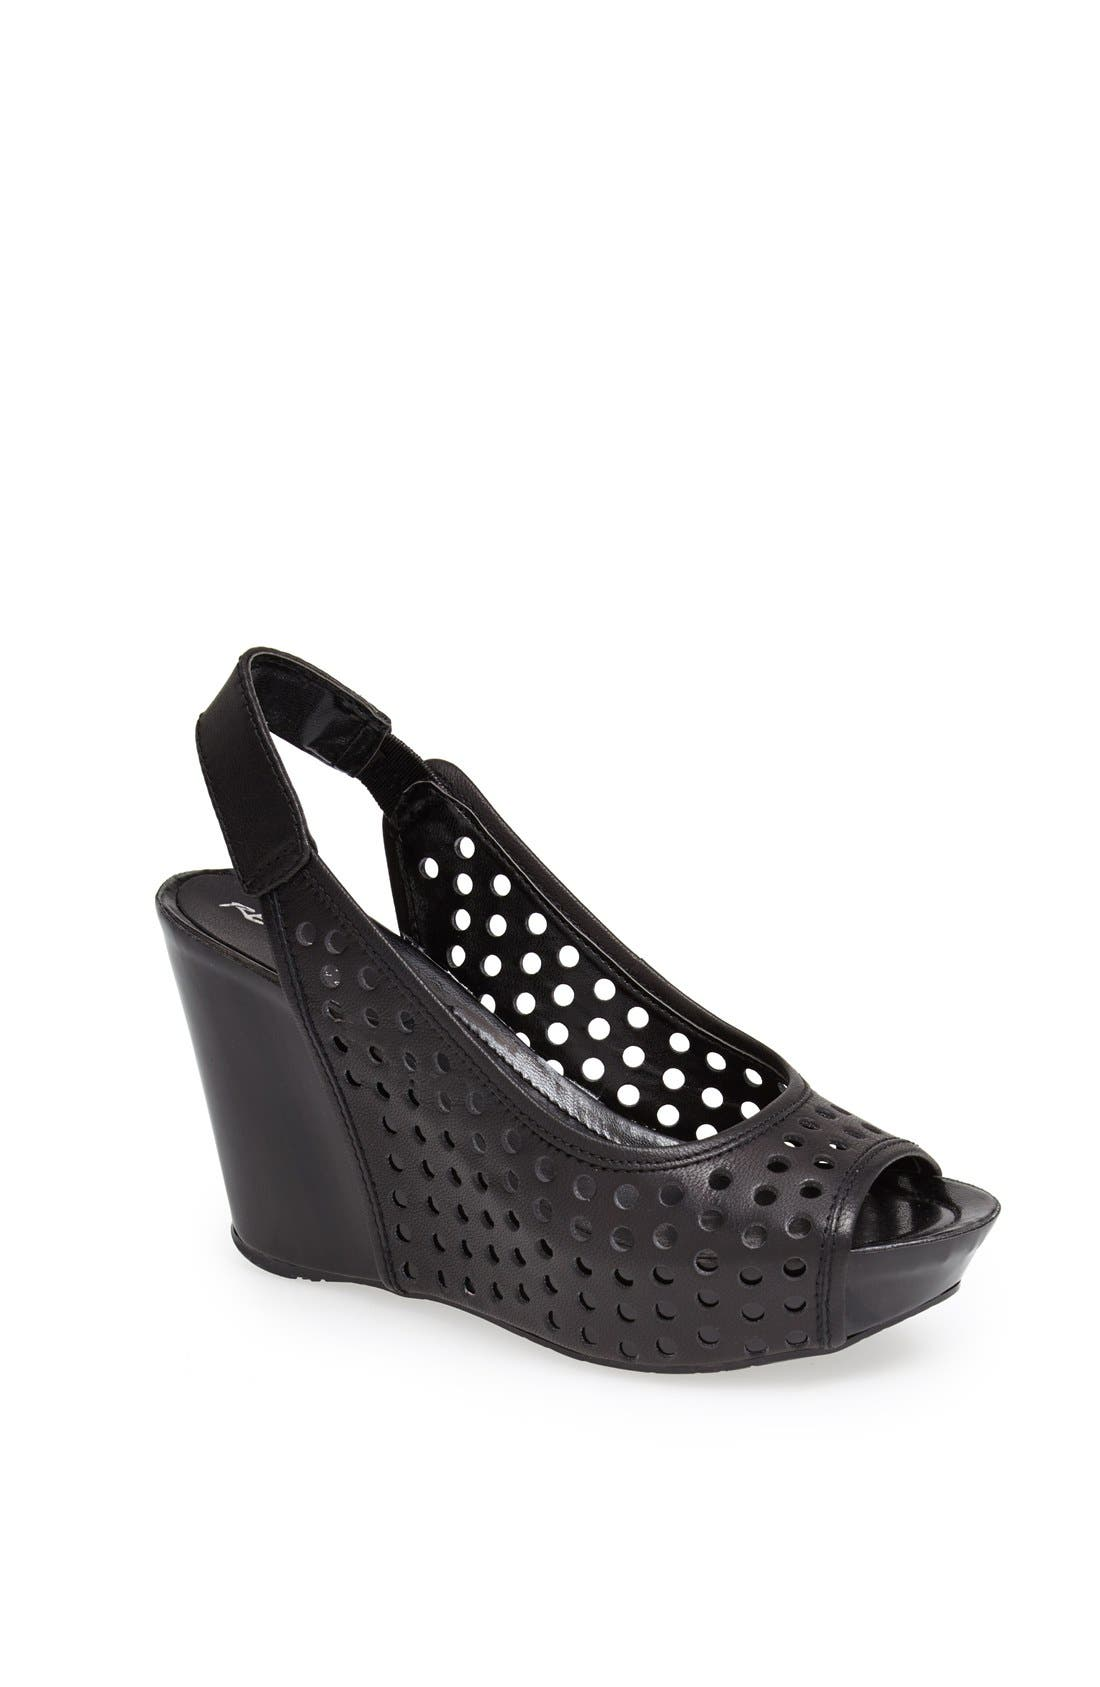 Main Image - Kenneth Cole Reaction 'Soley Roller 3' Perforated Slingback Sandal